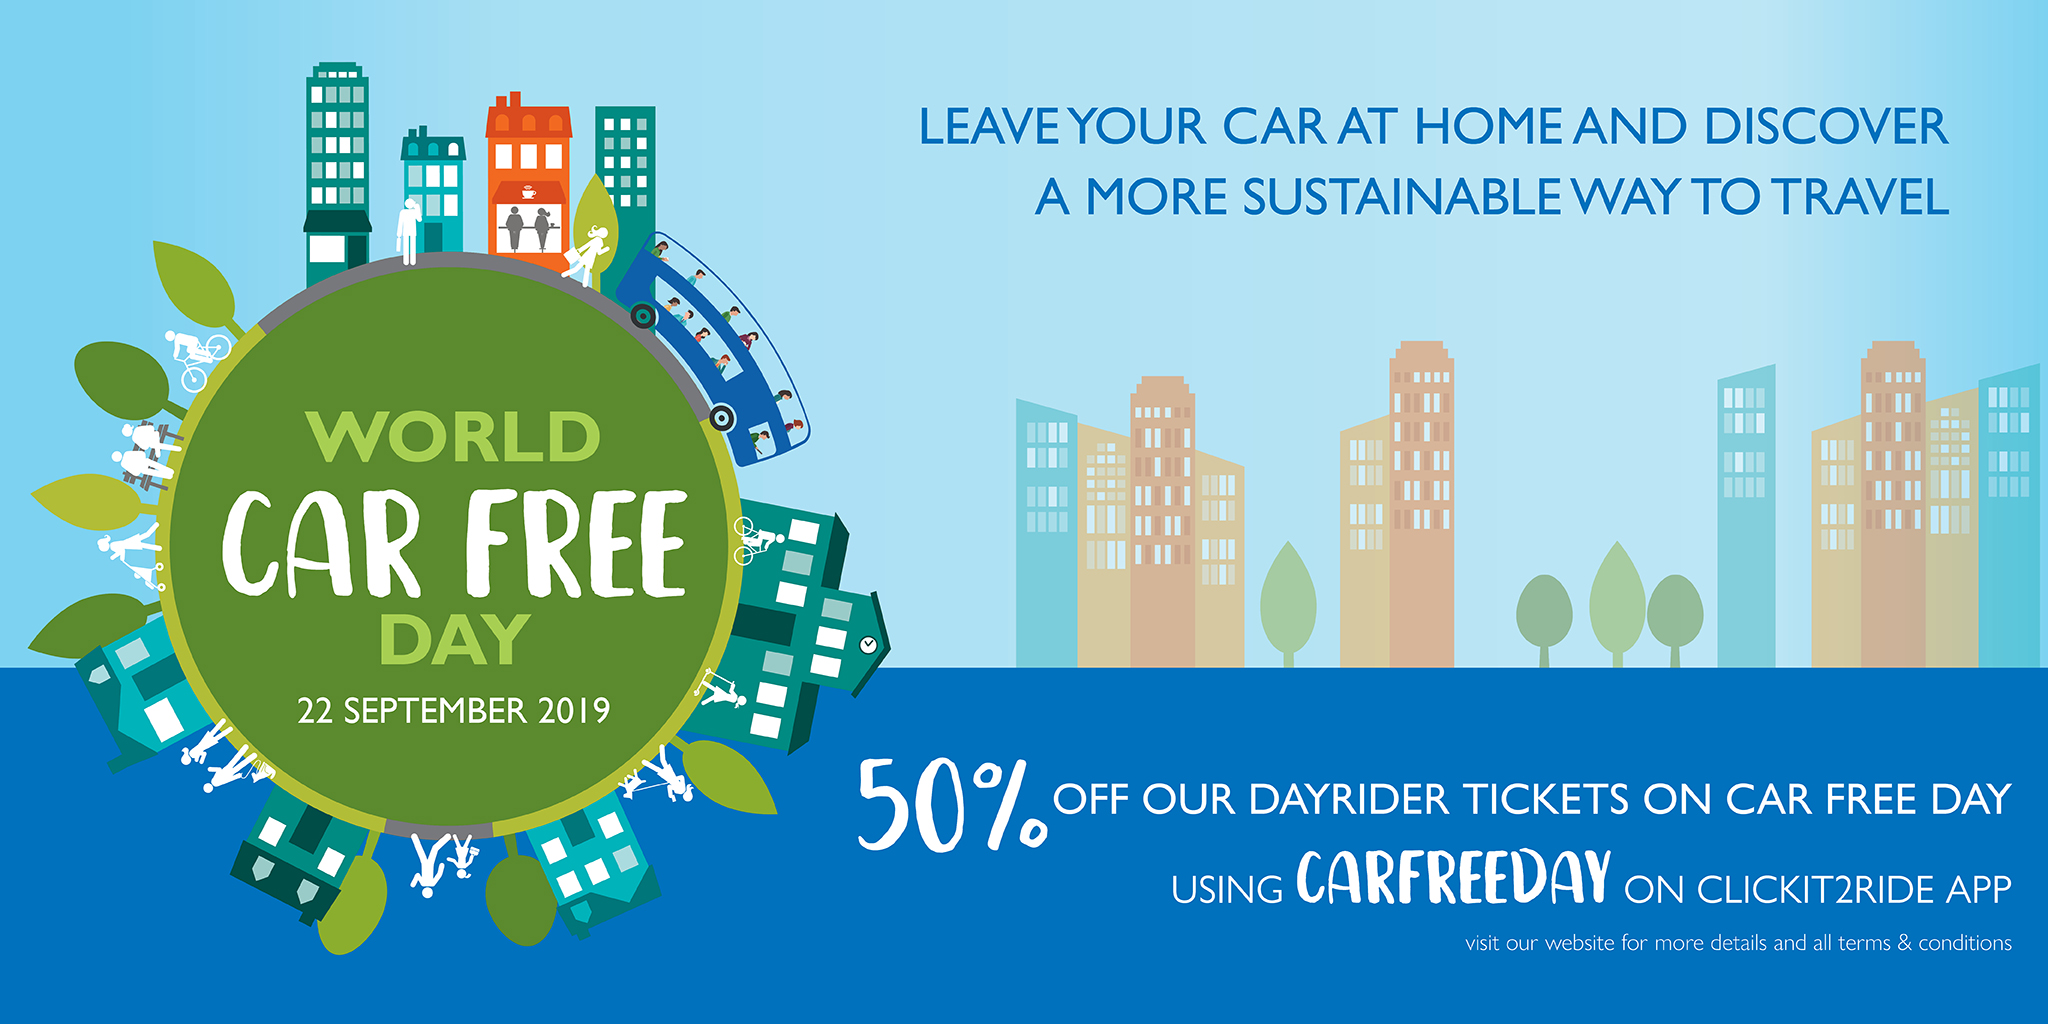 World Car Free Day - Sunday 22nd September